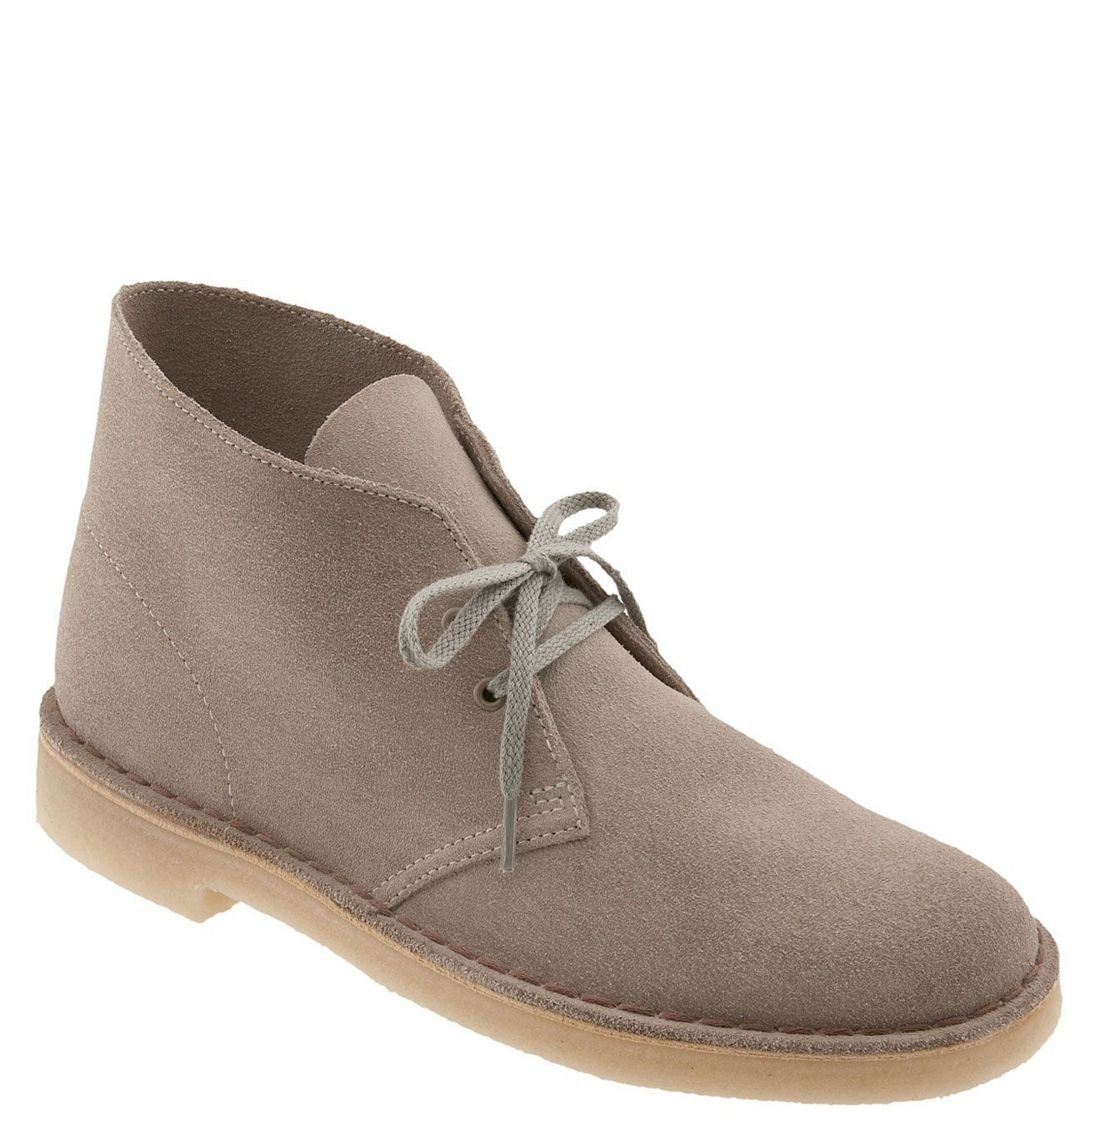 new listing new men's sperry top sider camden mid nubuck oxford coolfloadiq.gq coolfloadiq.gq for